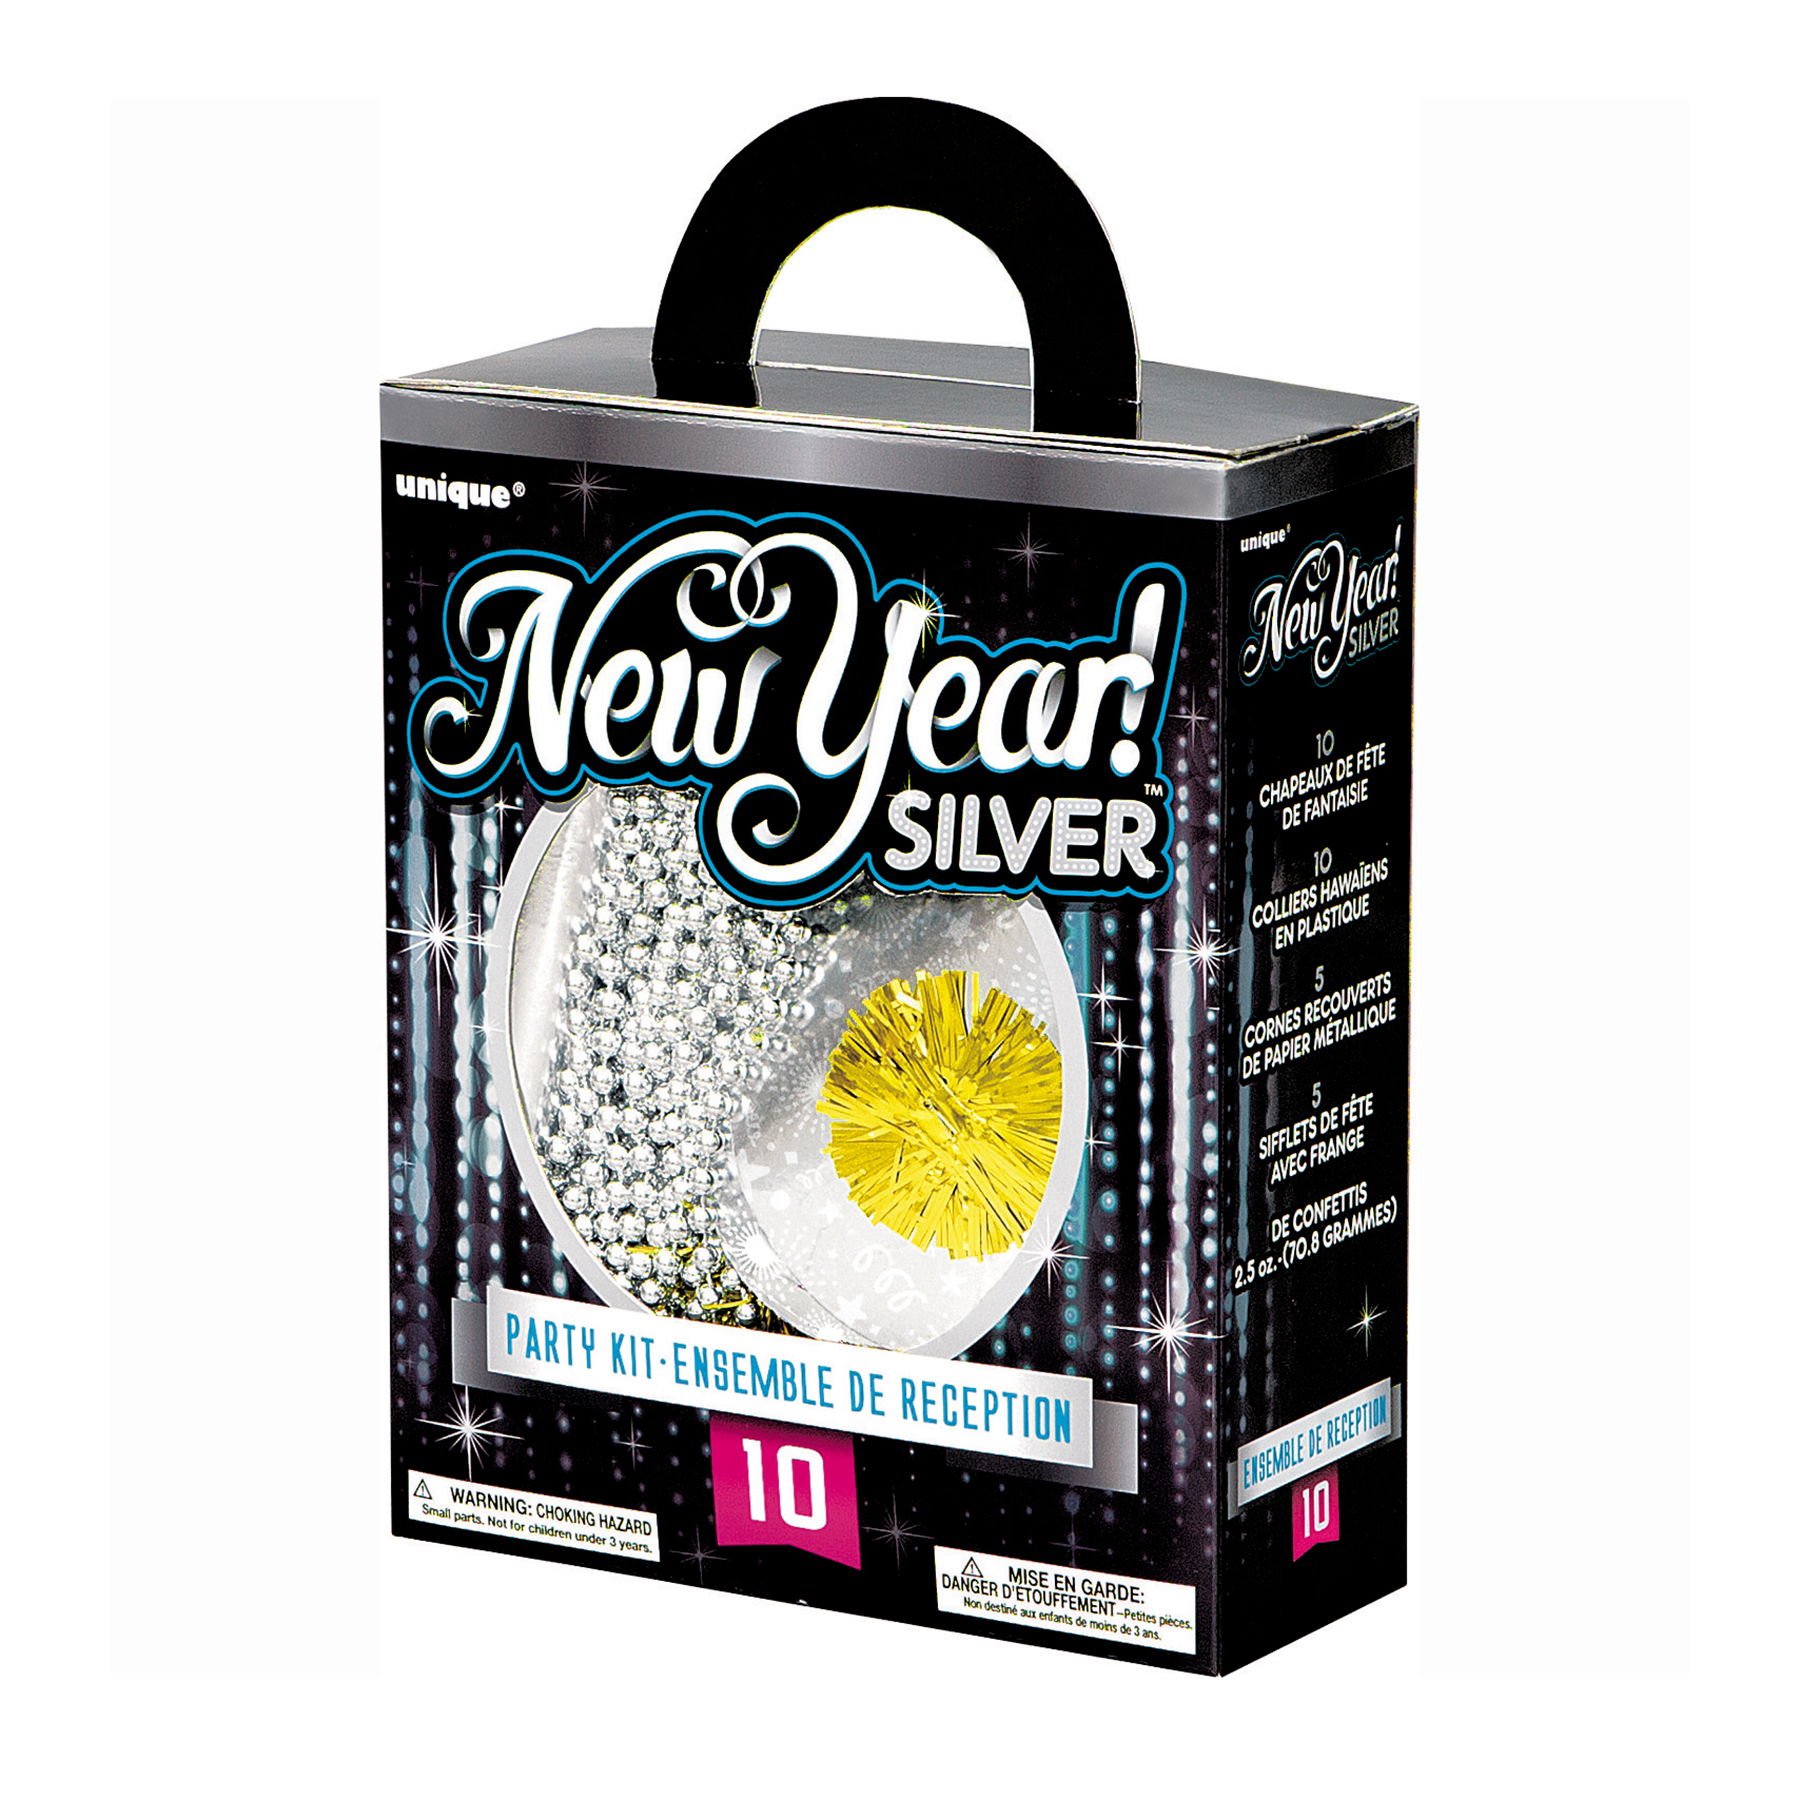 1800x1800 Silver New Years Accessories Kit For 10 Guests New Year's Eve